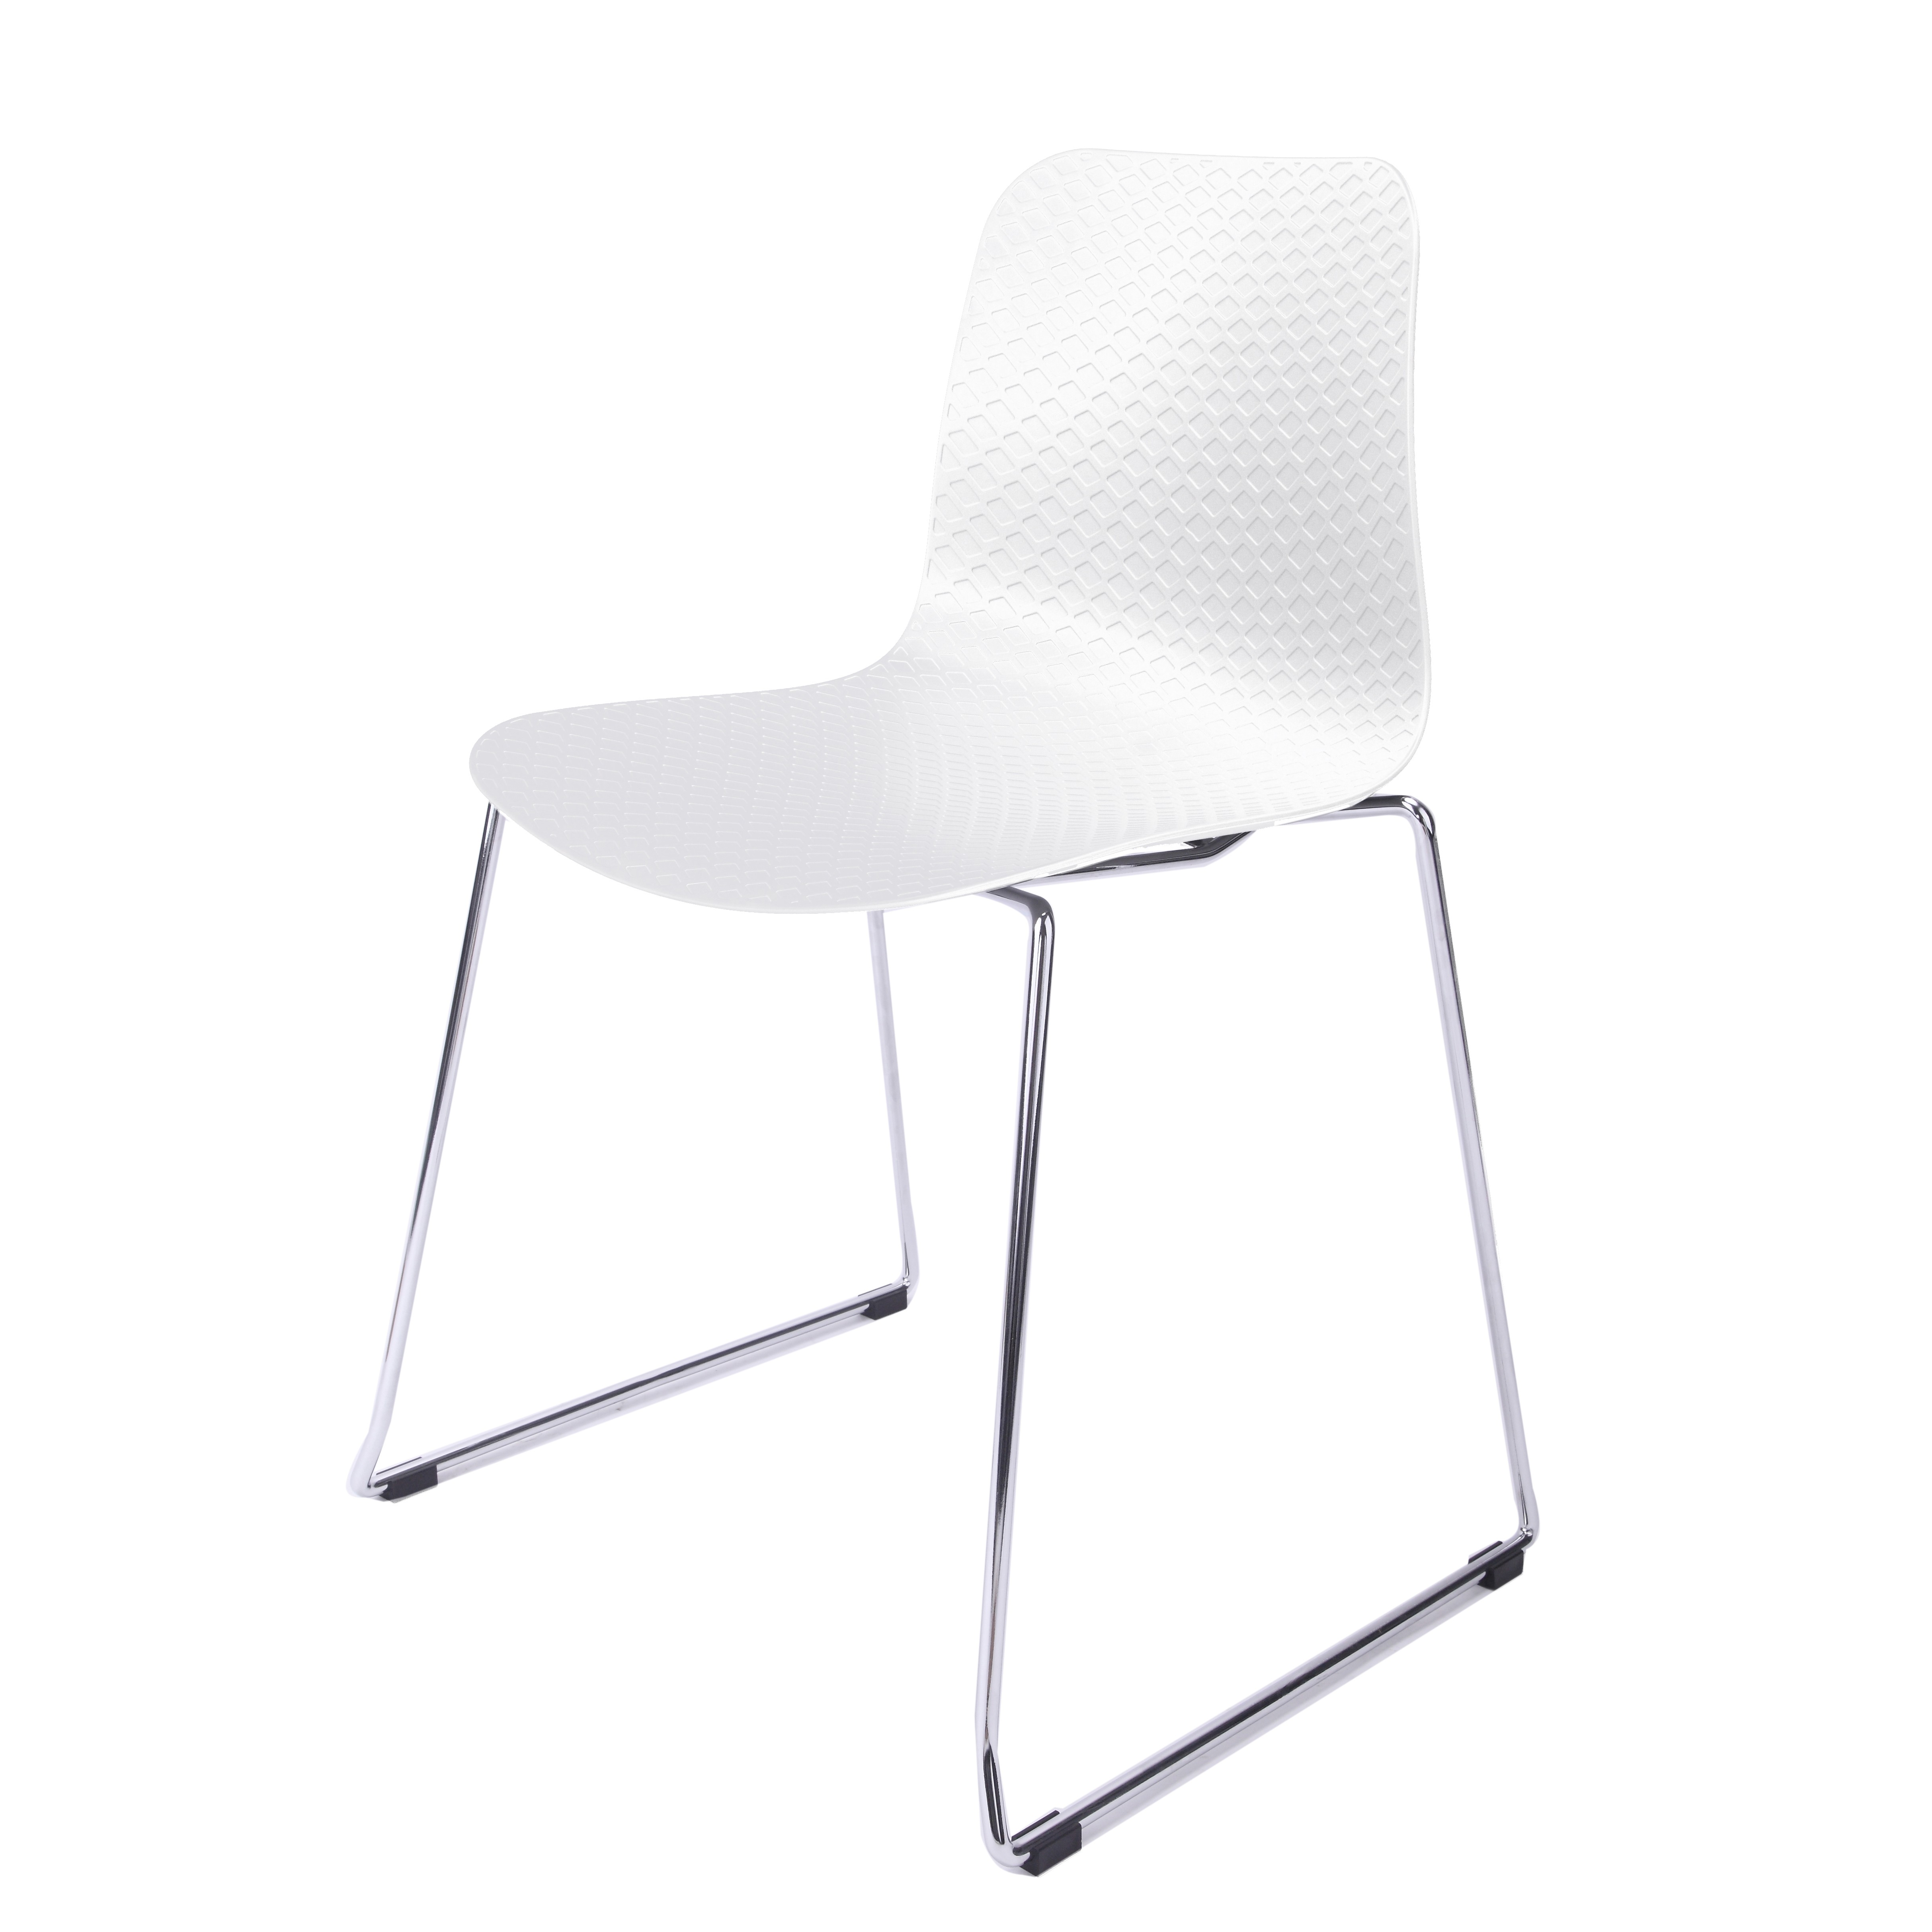 Exceptionnel Hebe Series White Dining Shell Side Chair Molded Plastic Steel Metal Legs